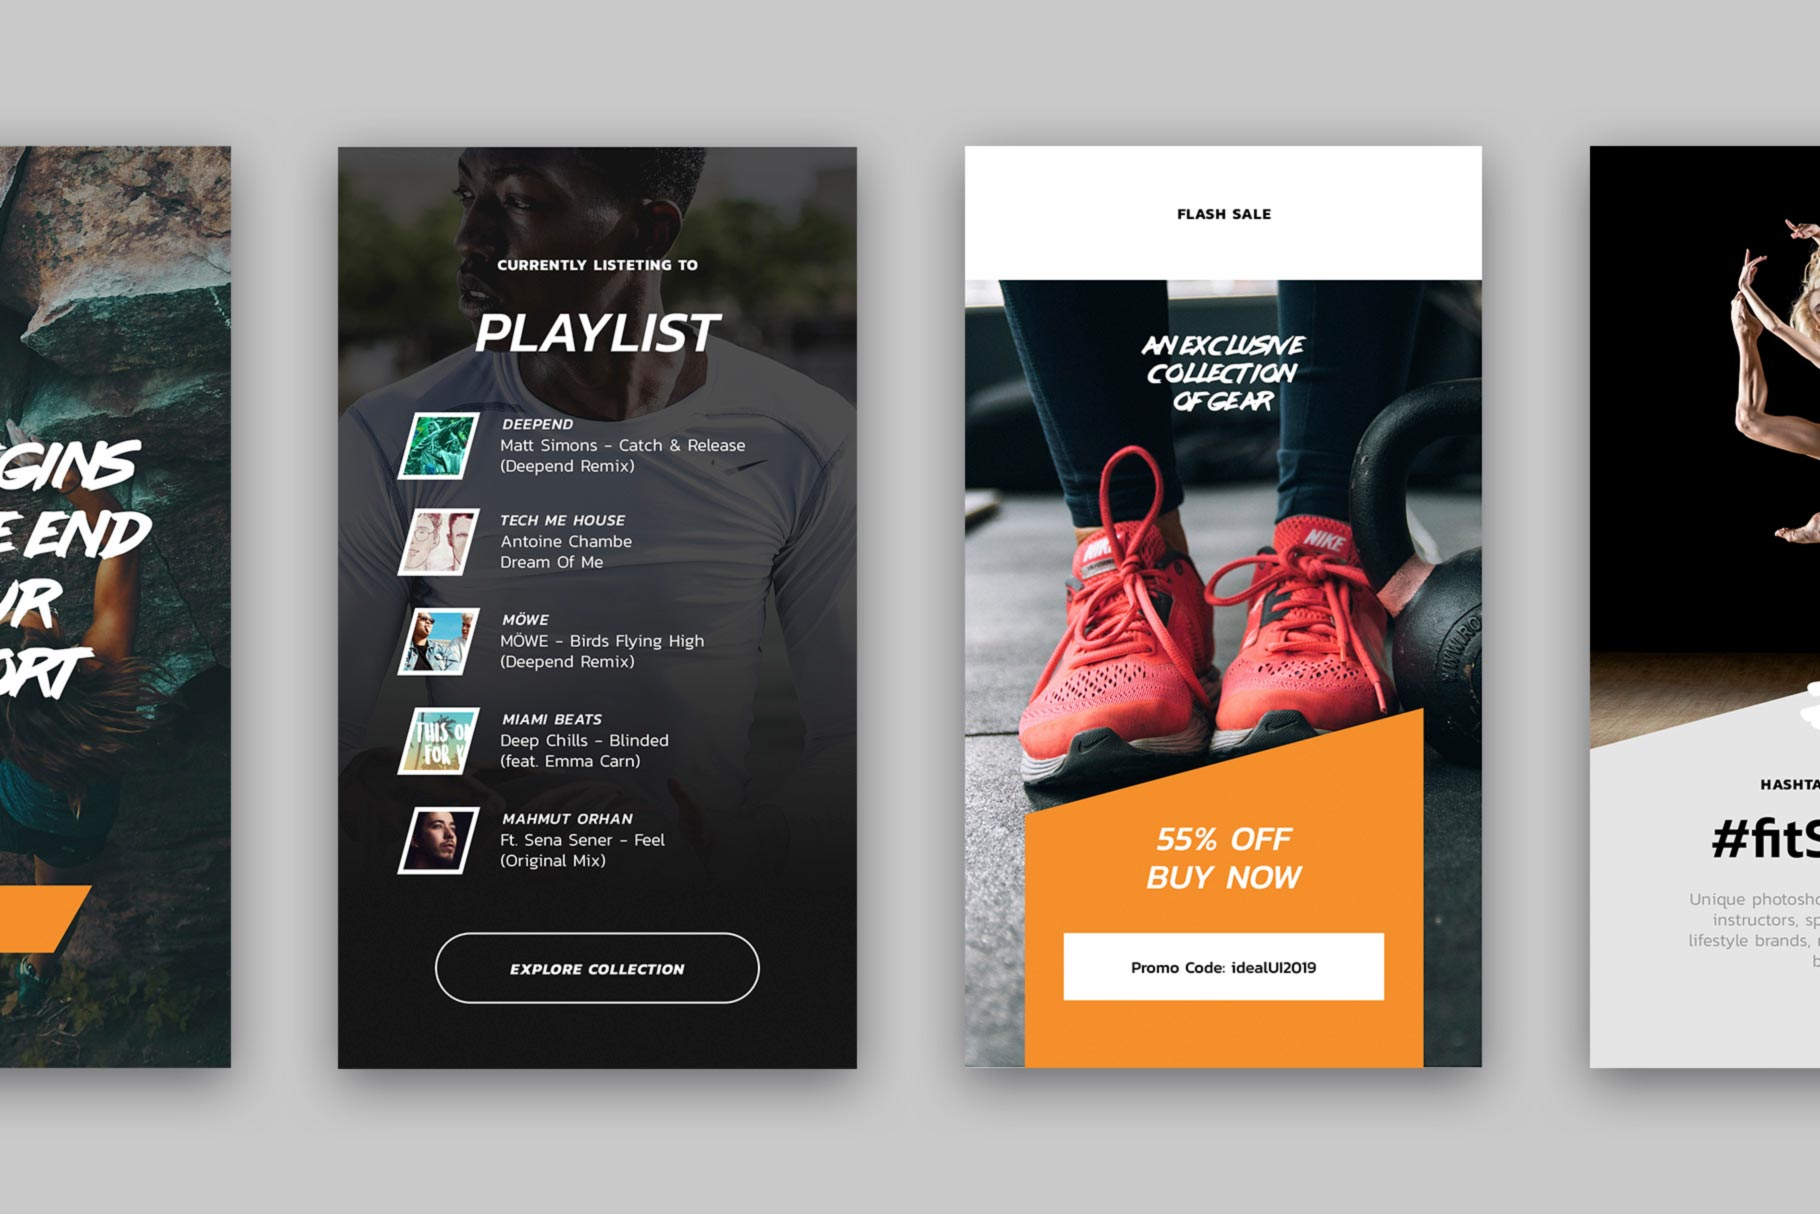 Use these story templates to promote your workout program or share important news or announcements with your followers. It's a versatile range to give you flexibility and suit your different social needs. Our carefully crafted Instagram stories are perfect to promote fitness products, workout programs, recommendations, events or important notices such as exclusive sales, announcements, careers.